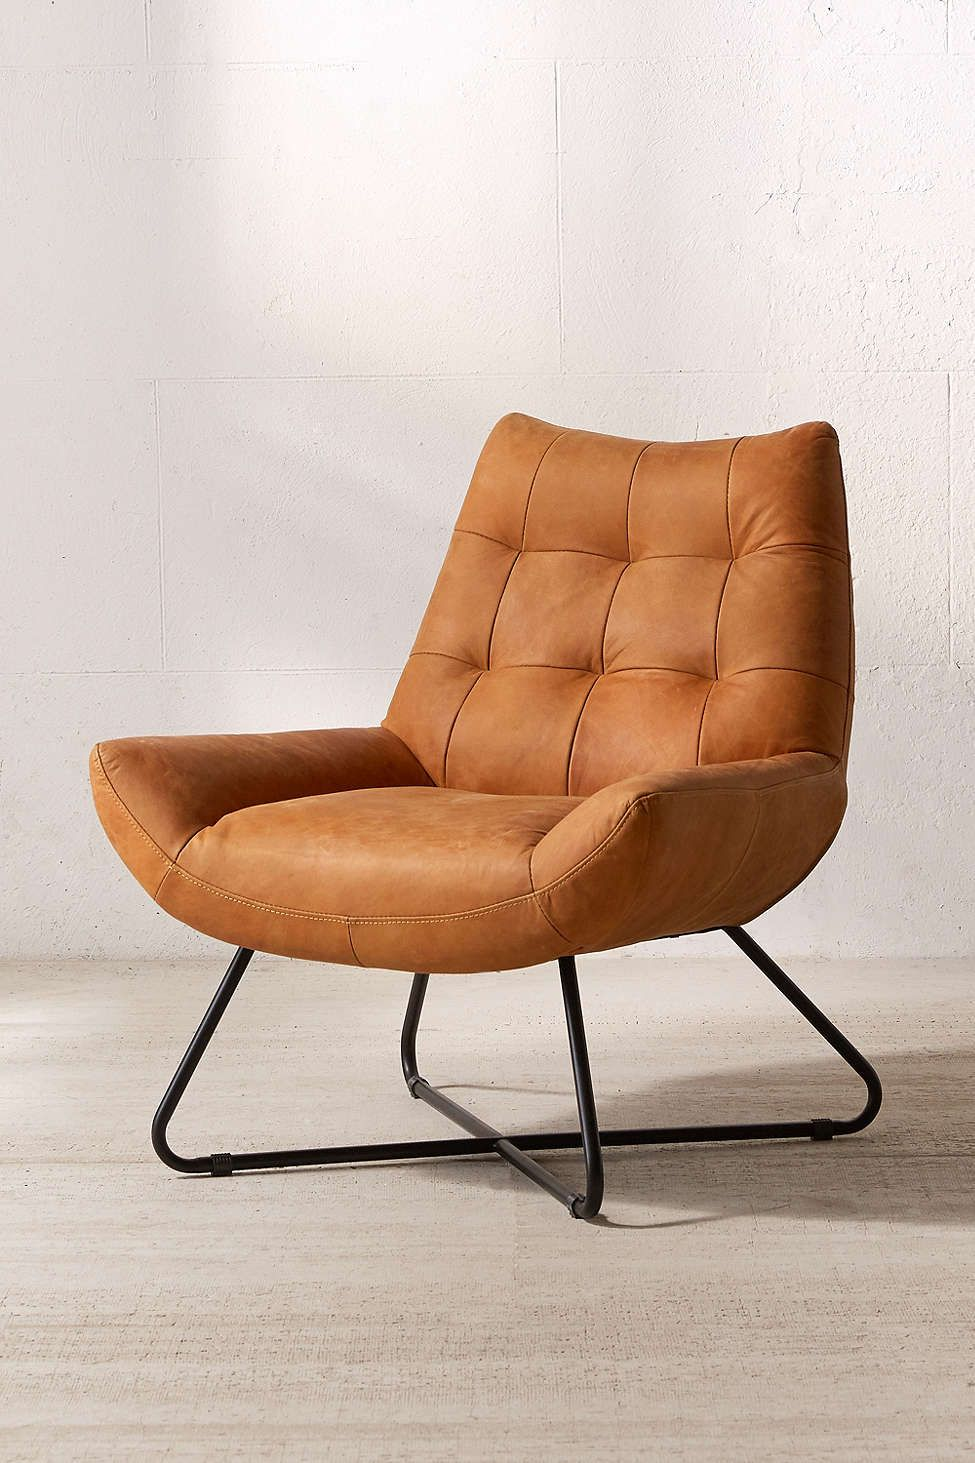 Bedroom Chair Retro Swiss Ball Modern But Comfy Leather Lounger Urban Outfitters Picks